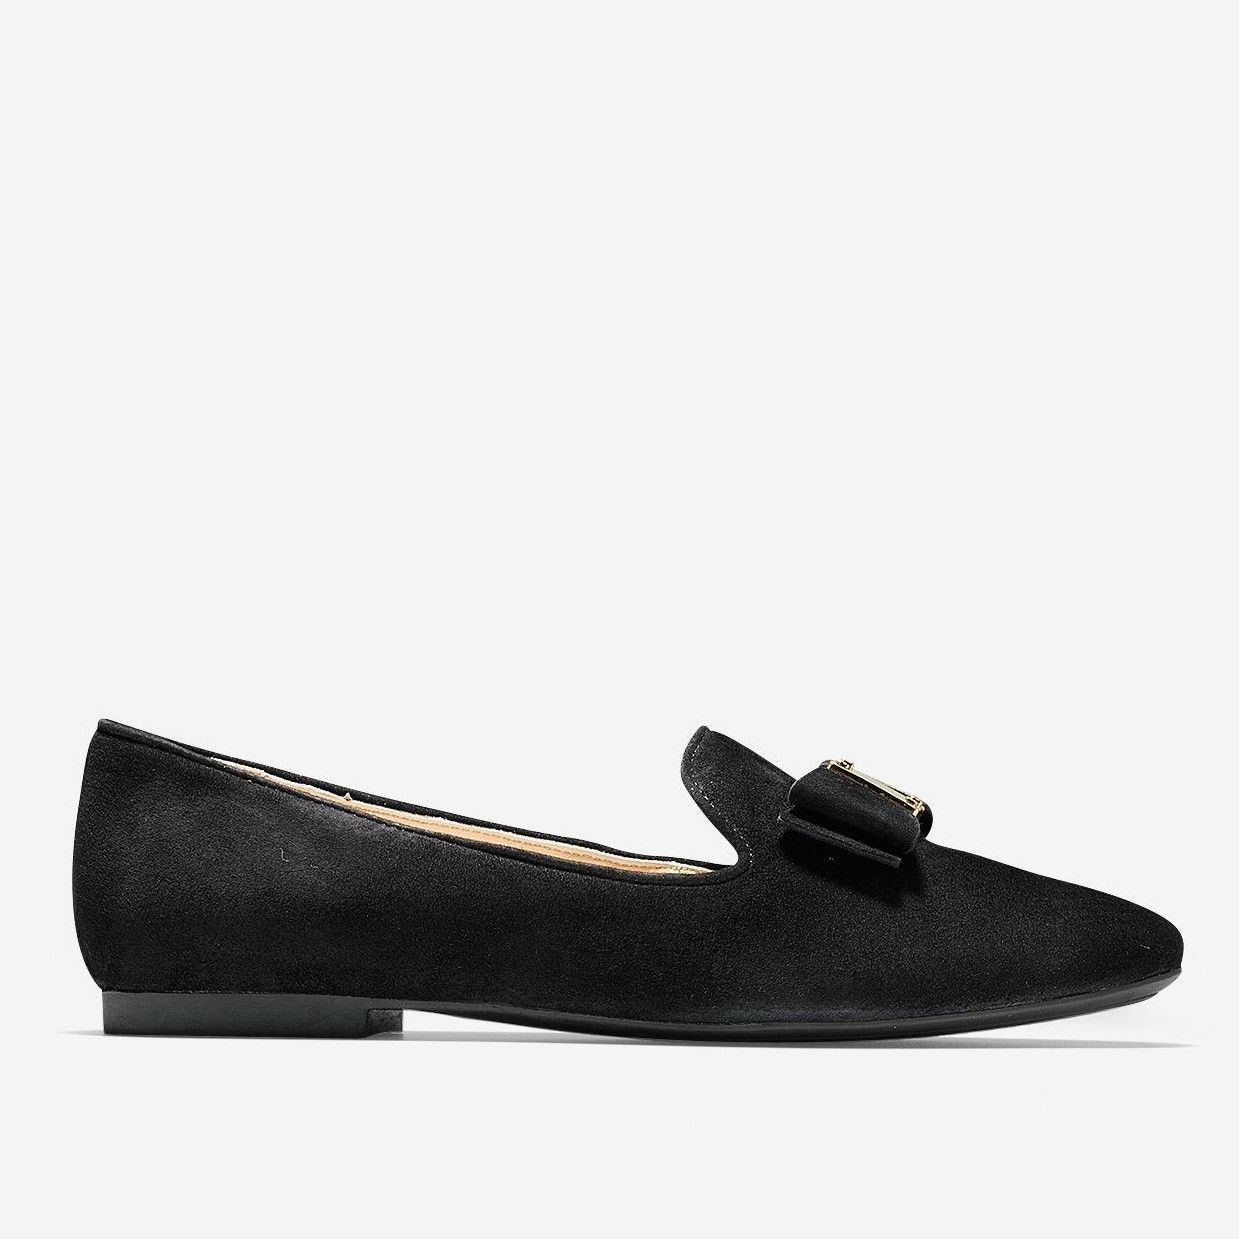 6c32dde1ee7 COLE HAAN Tali Bow Loafer - Black Suede.  colehaan  shoes